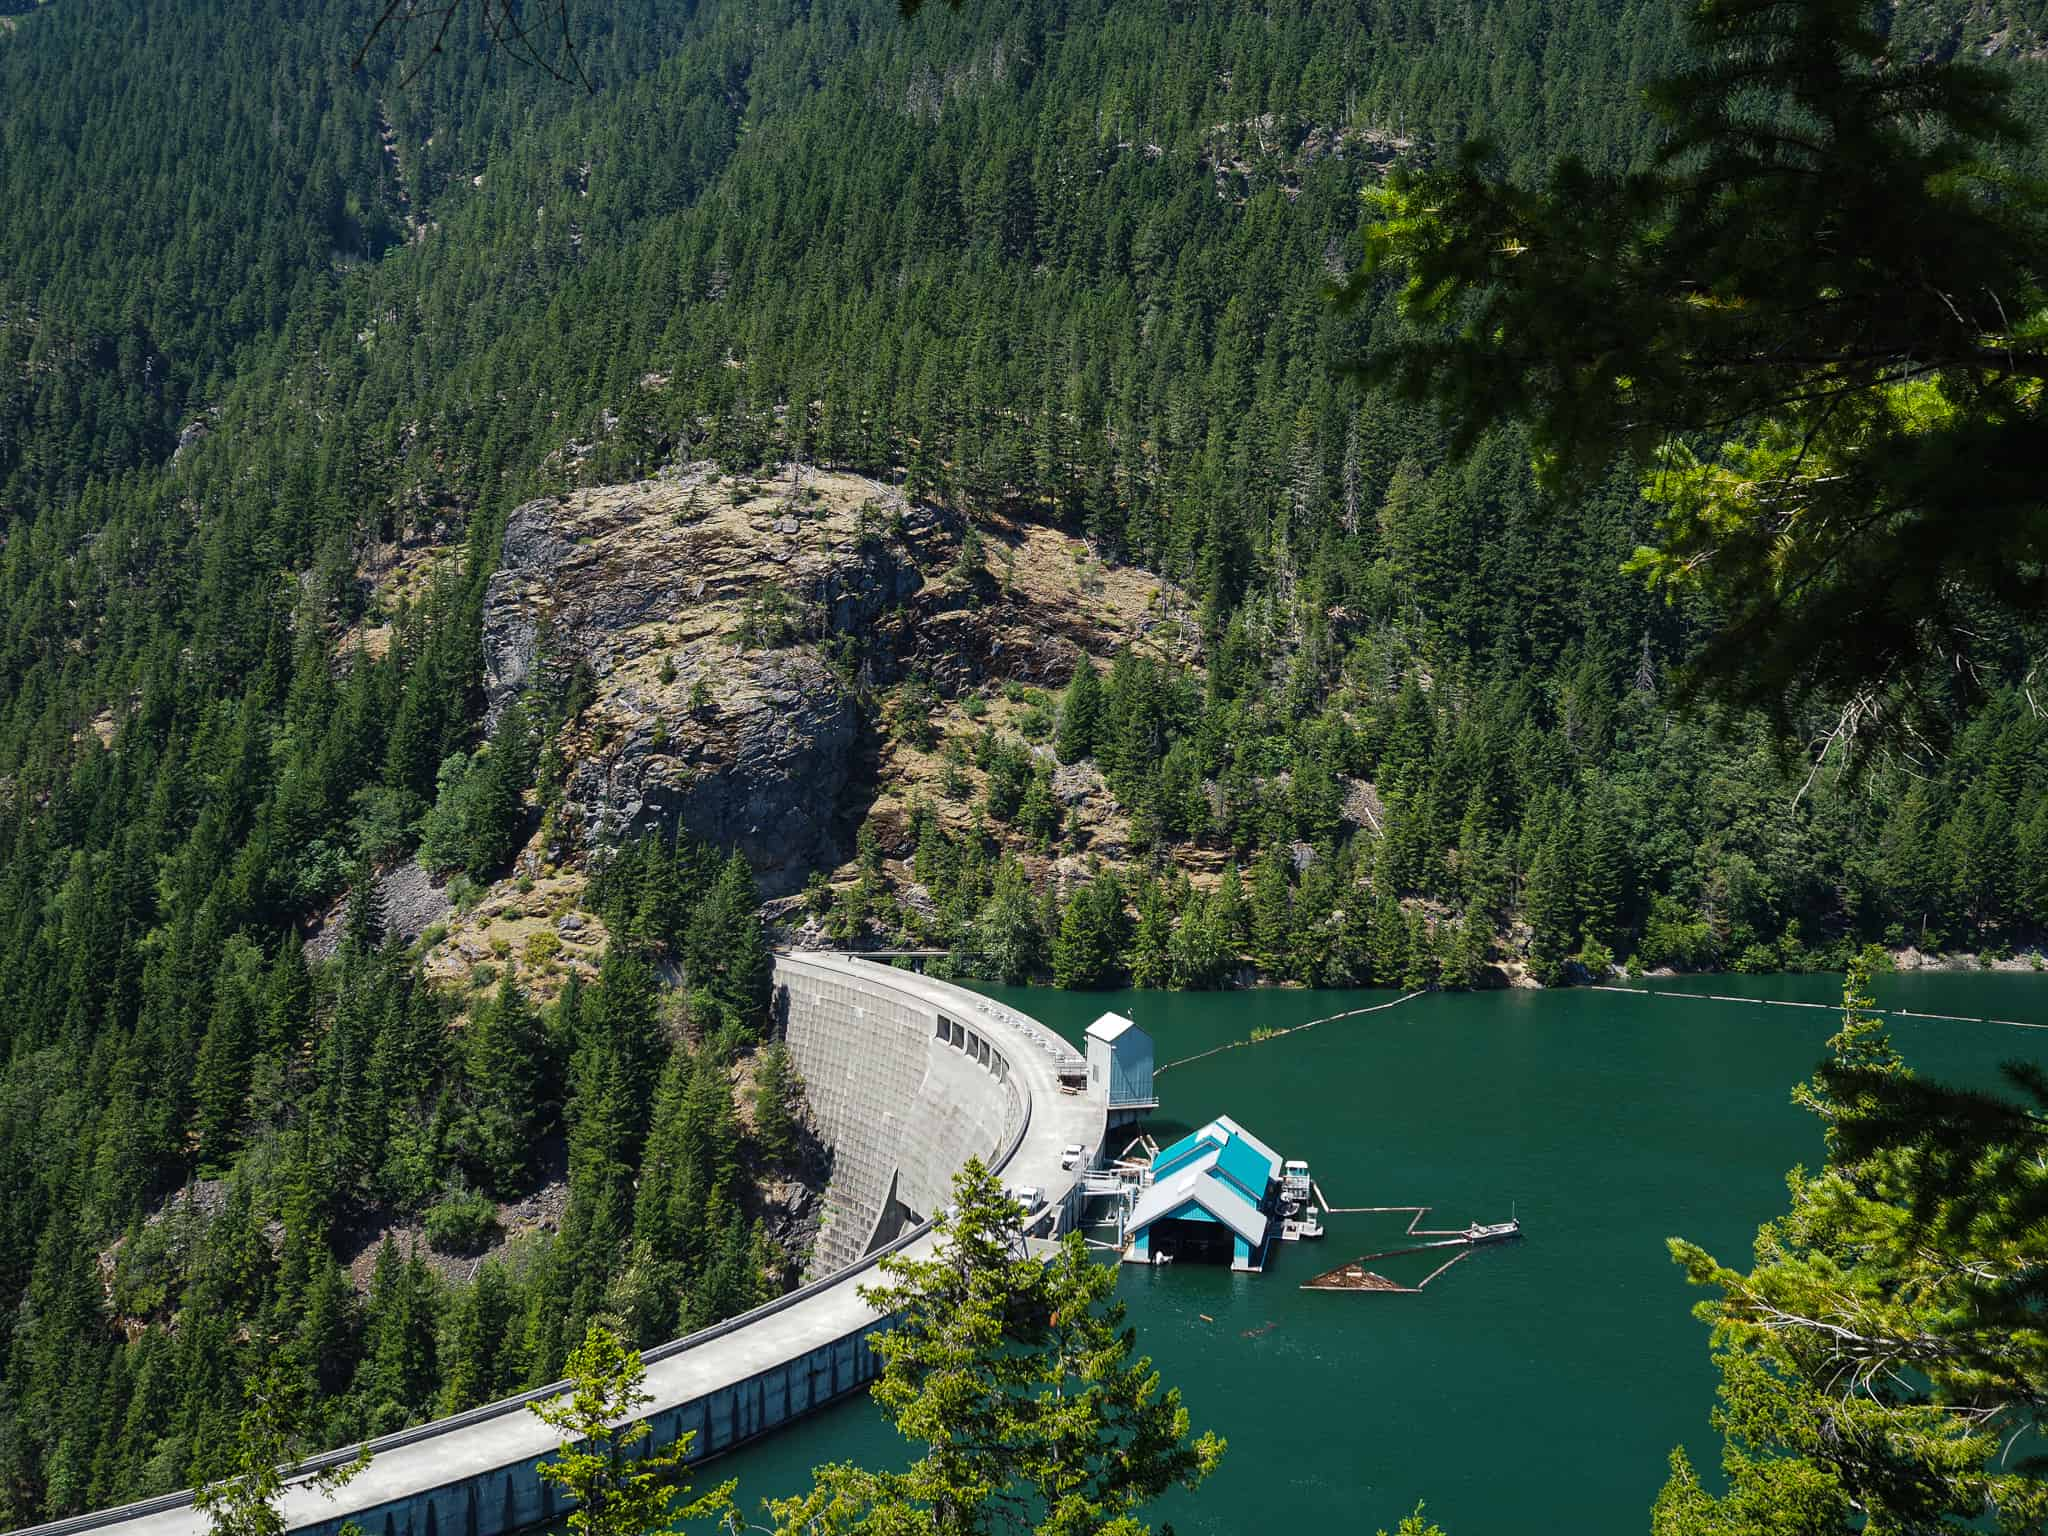 North Cascades National Park is in northern Washington State. A perfect day trip from Seattle, WA. This guide will detail boat rentals to explore Ross Lake.